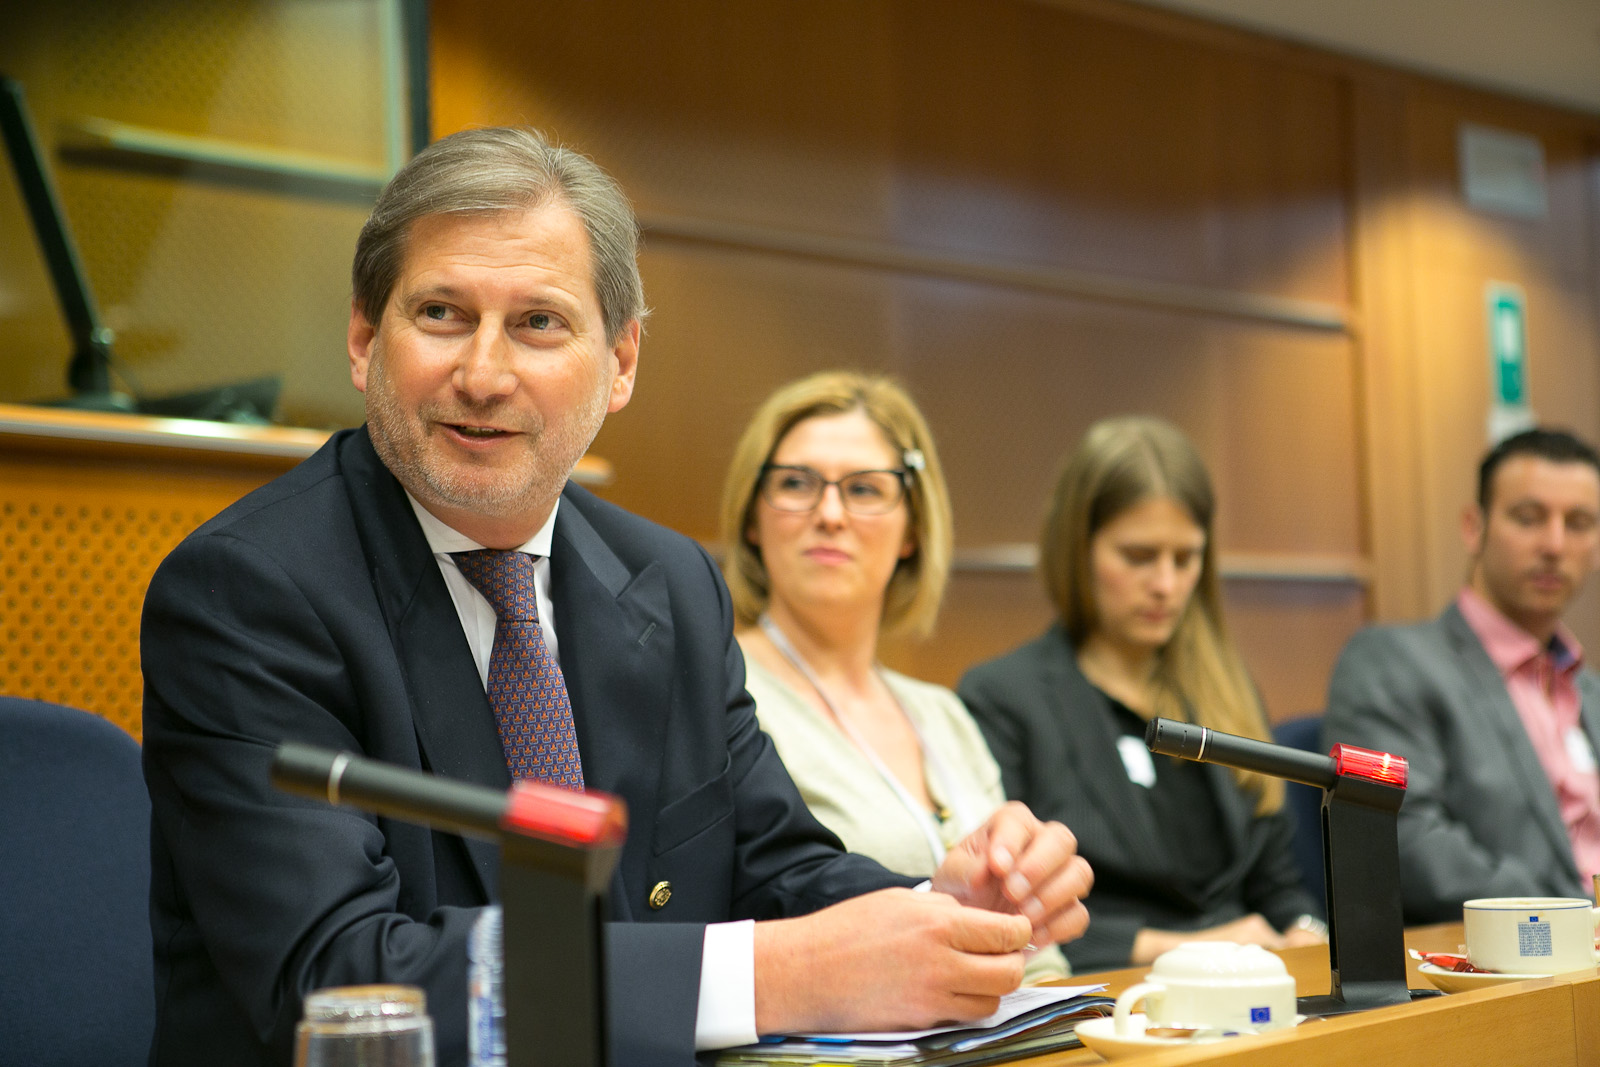 Commissioner Hahn takes responsibility for the portfolio of Vice President Reding, responsible for justice, fundamental rights and citizenship